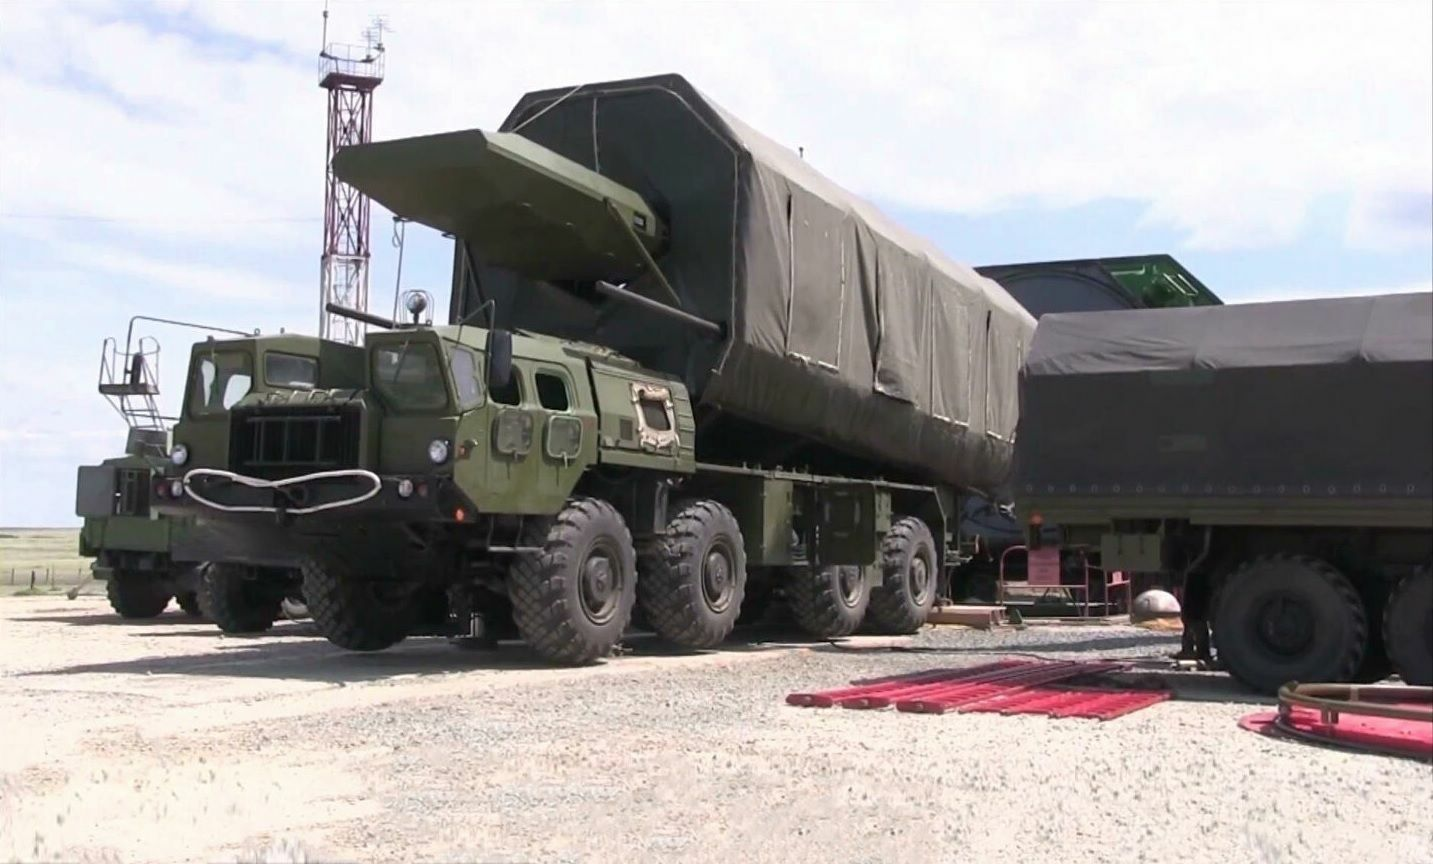 Avangard hypersonic missile system